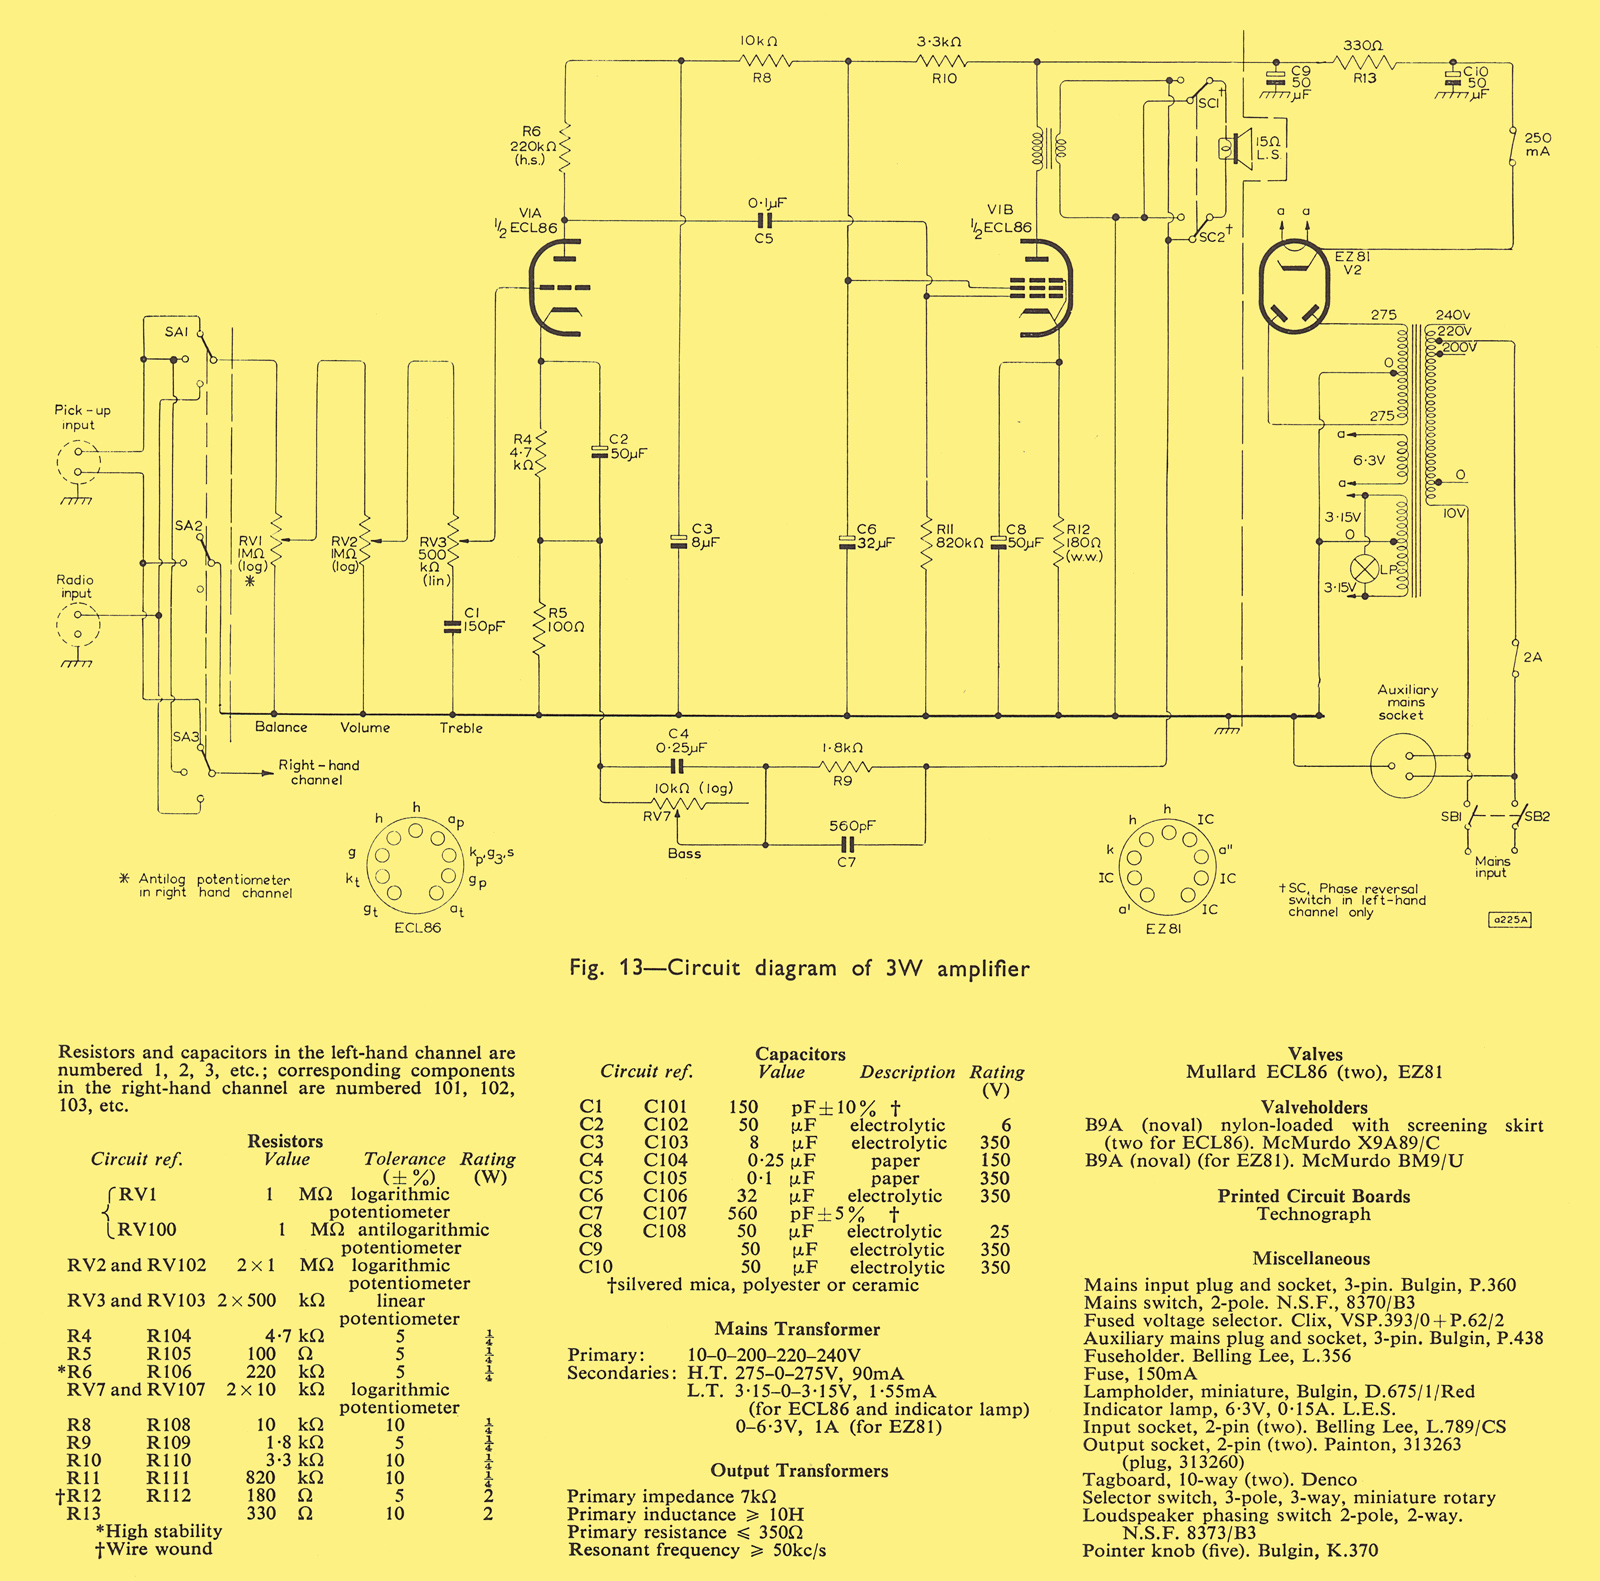 Mullard Wiring Diagram Stereophonic Pictures Schematic Dynaco Mkii Tube Amplifier Ampslabcom Three Watt Economcal 1600x1581